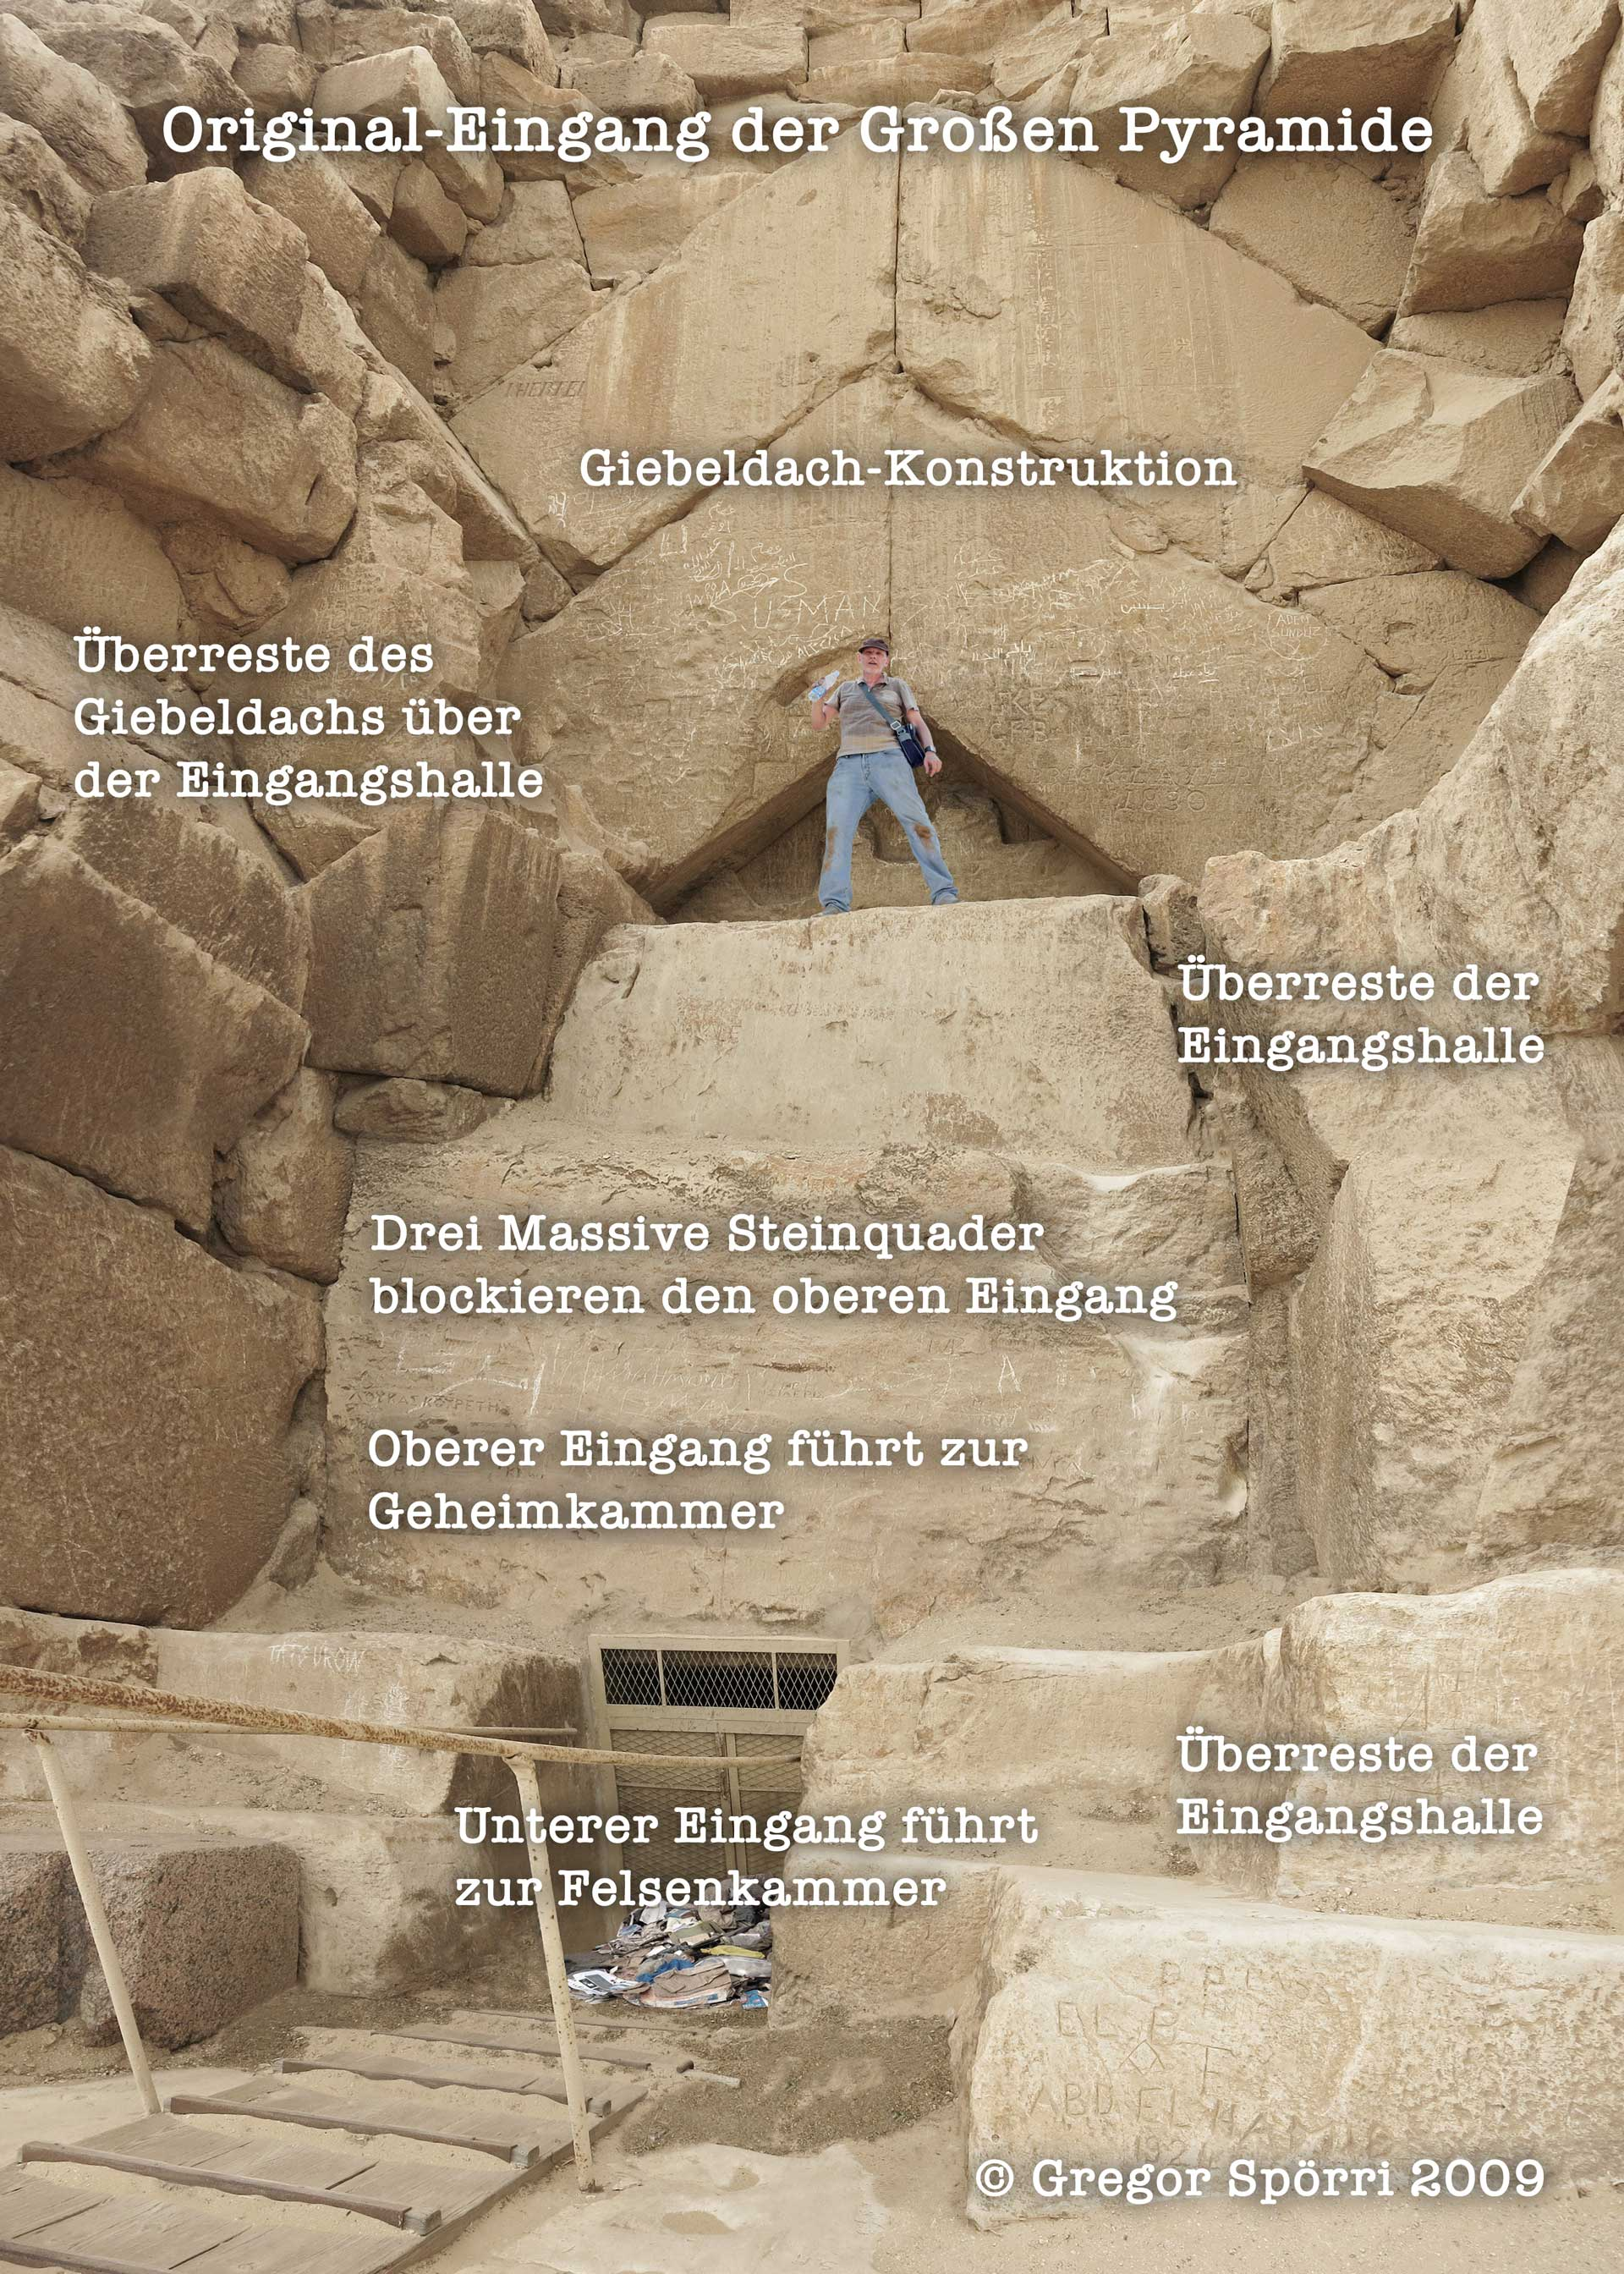 GS explores the original entrance to the Pyramid of Cheops (2009)